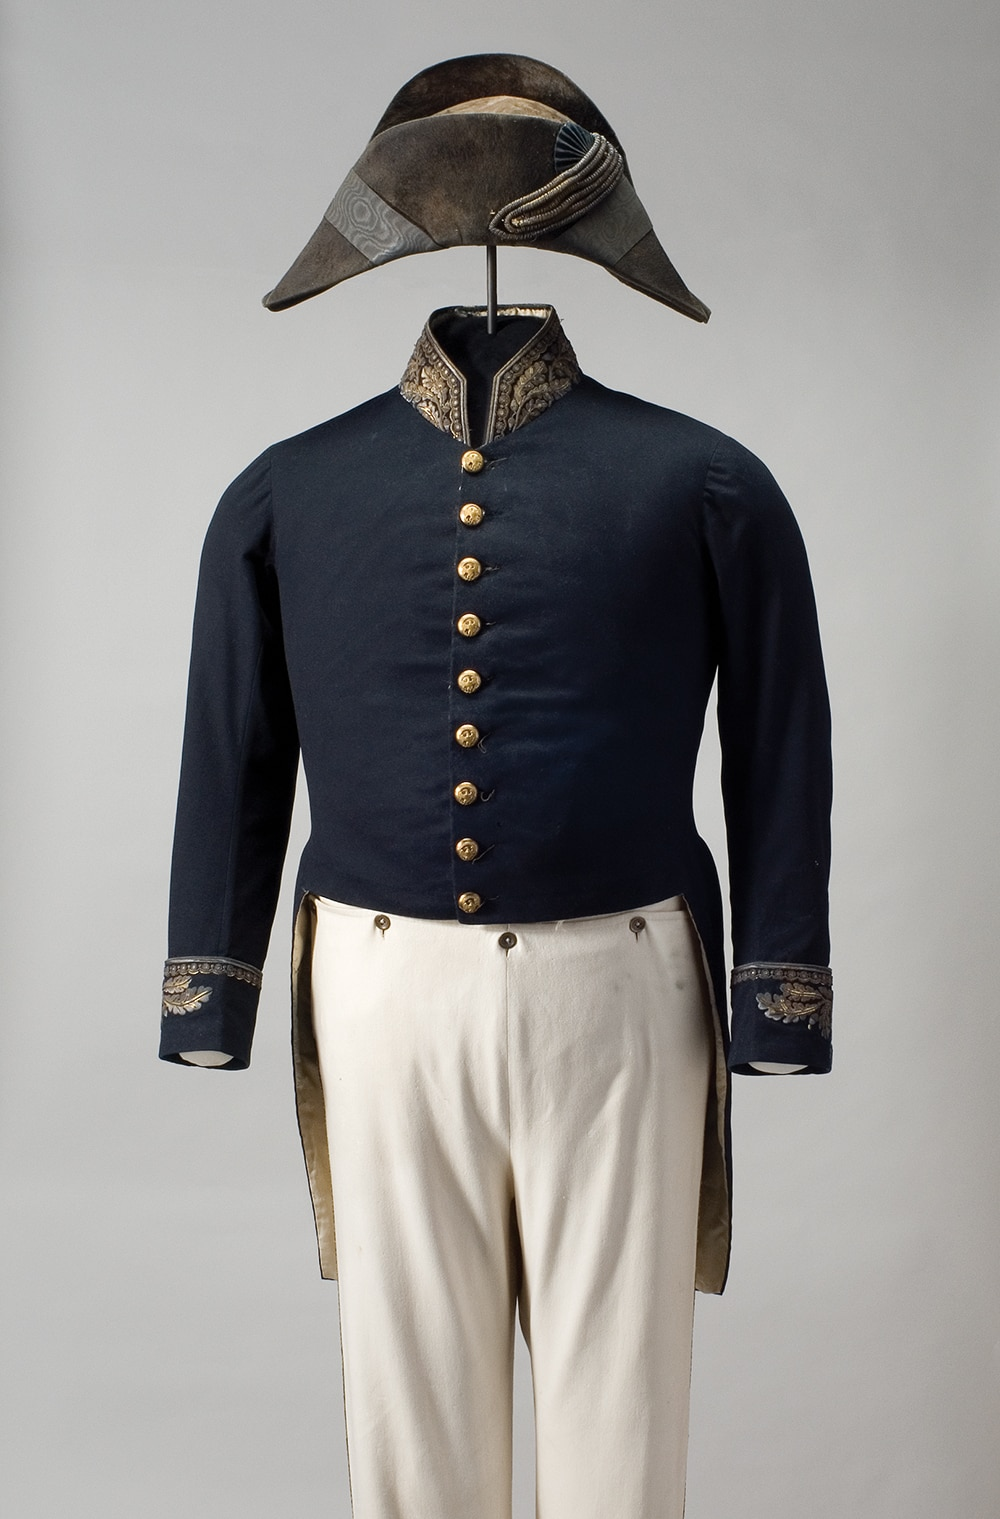 Photo showing the uniform that John Y. Mason wore during his tenure as U.S. Minister to France. He presented his credentials to Napoleon III on January 22, 1854, and served until 1859 when he died at post. [Department of State]